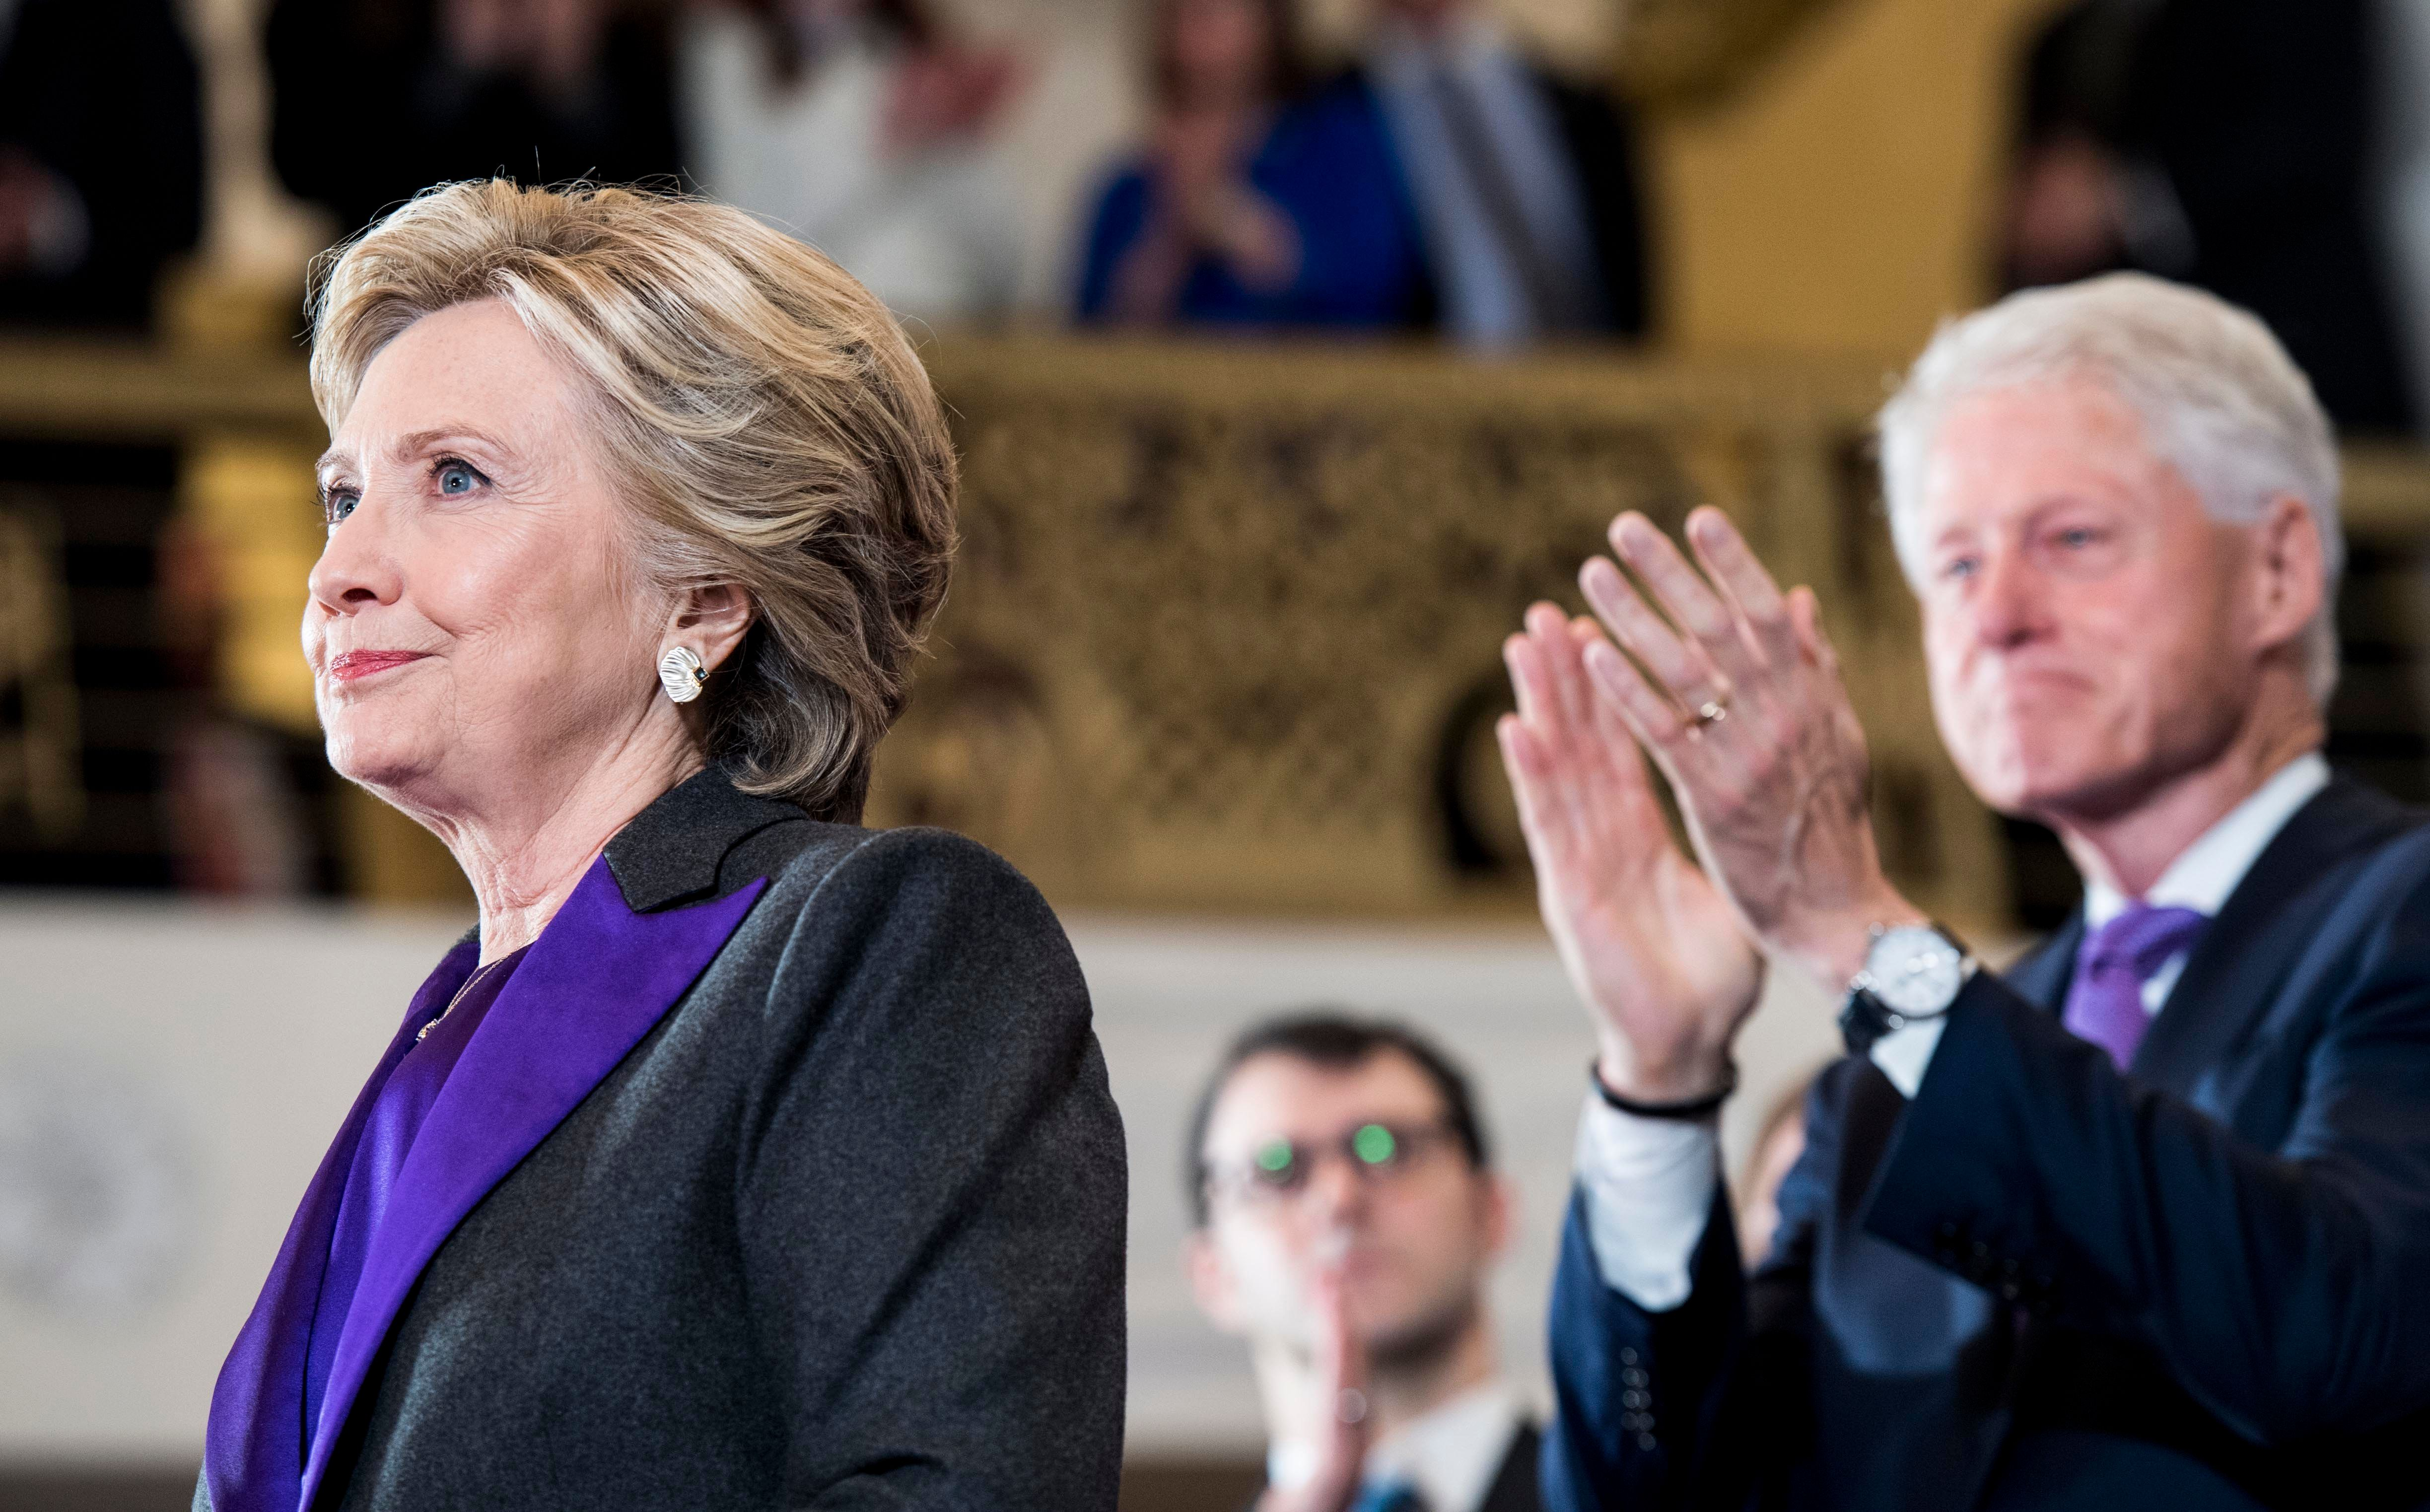 Bill Clinton Tears Up After Casting Electoral Vote For